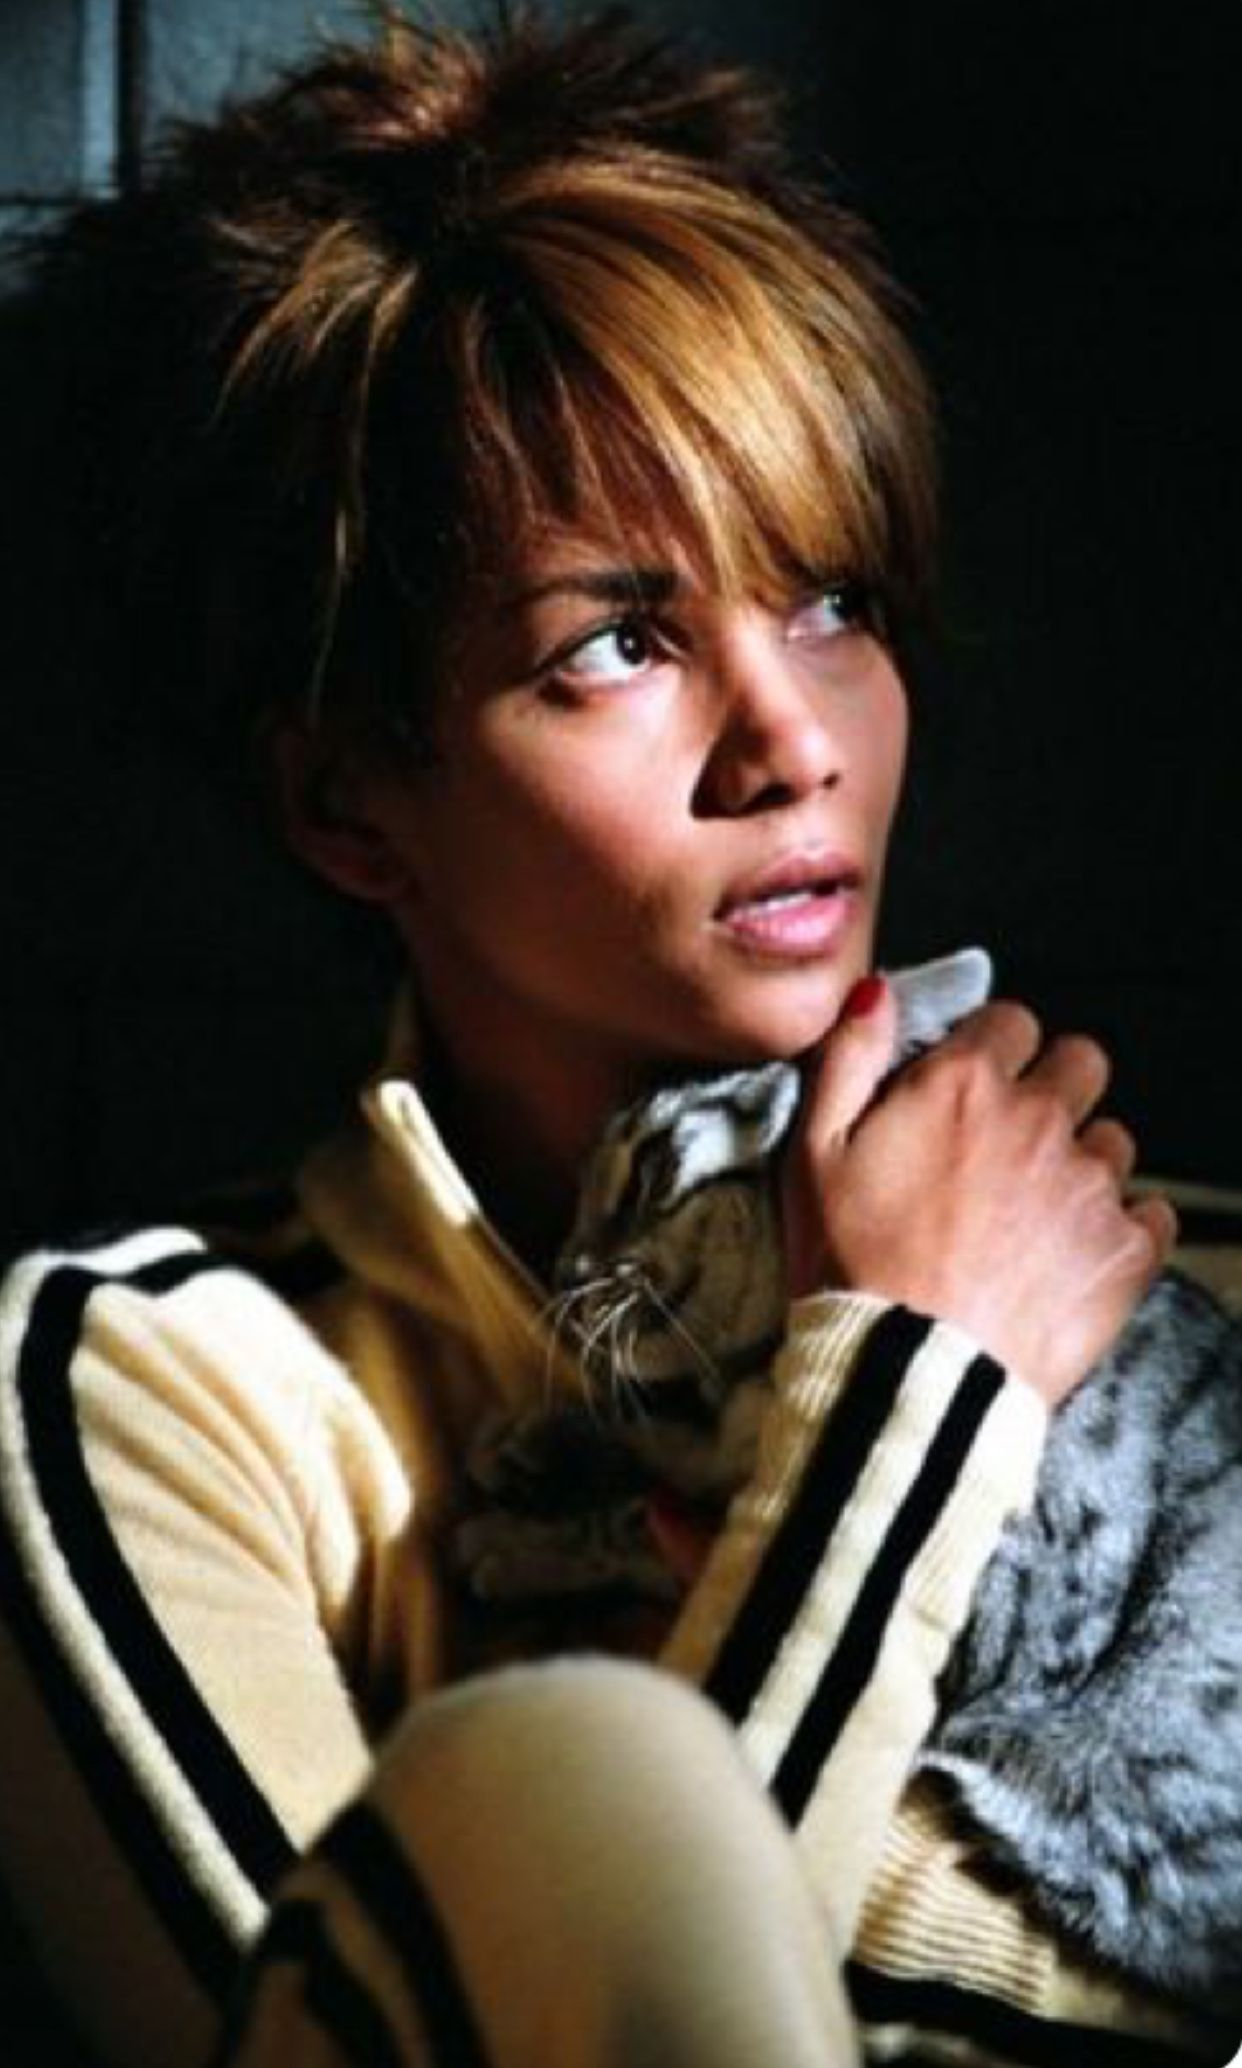 pin by holly bostick on halle berry | halle berry, cats, cat